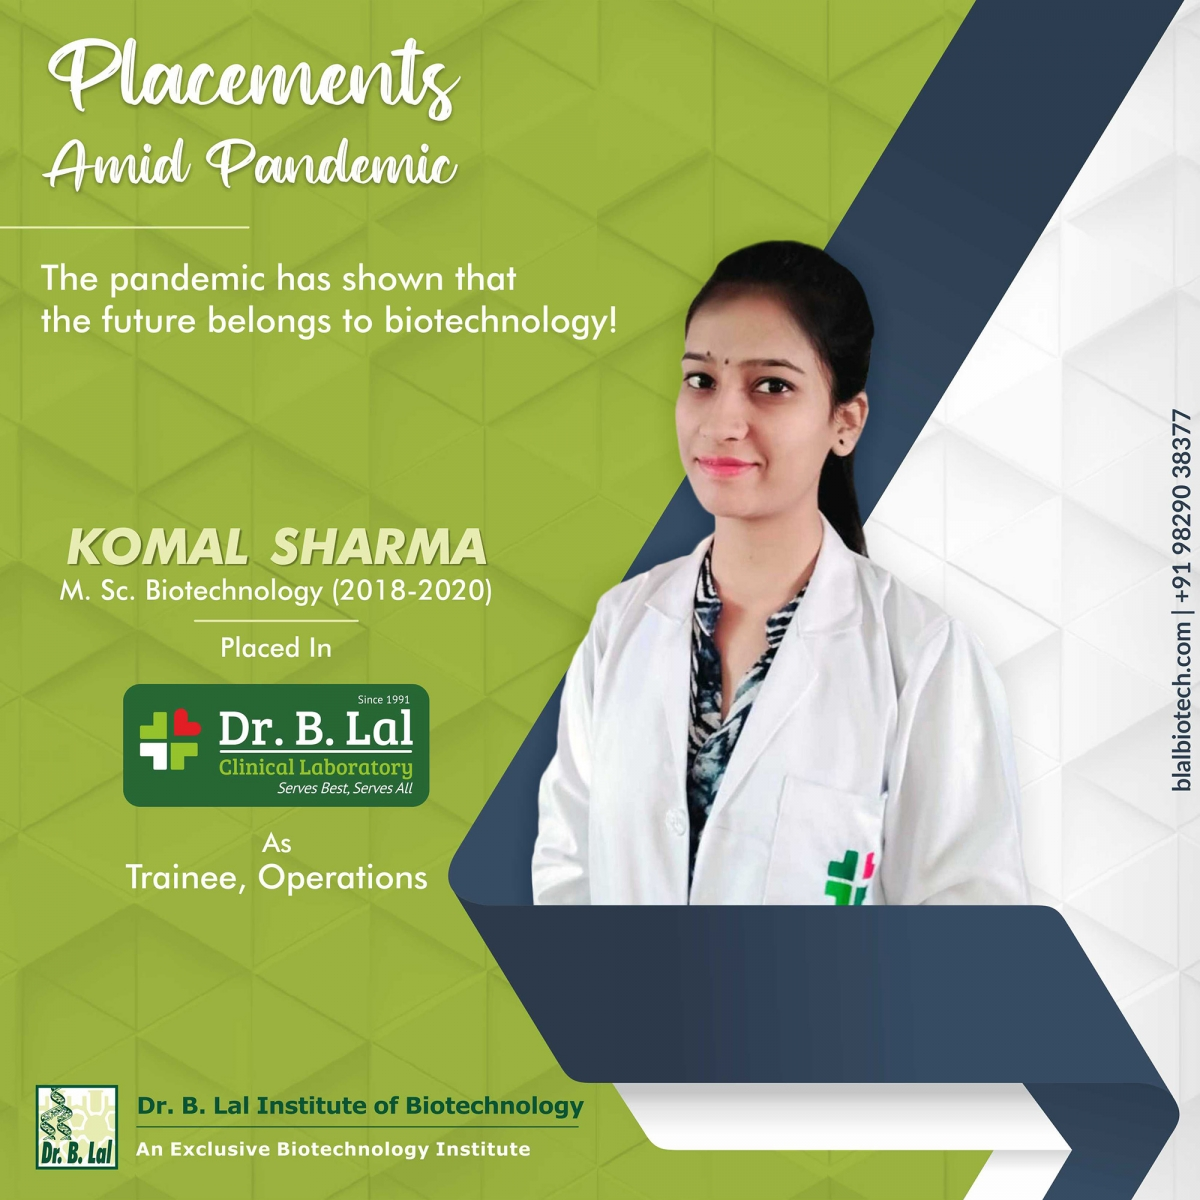 Komal Sharma   Placements Amid Pandemic   Dr. B. Lal Institute of Biotechnology